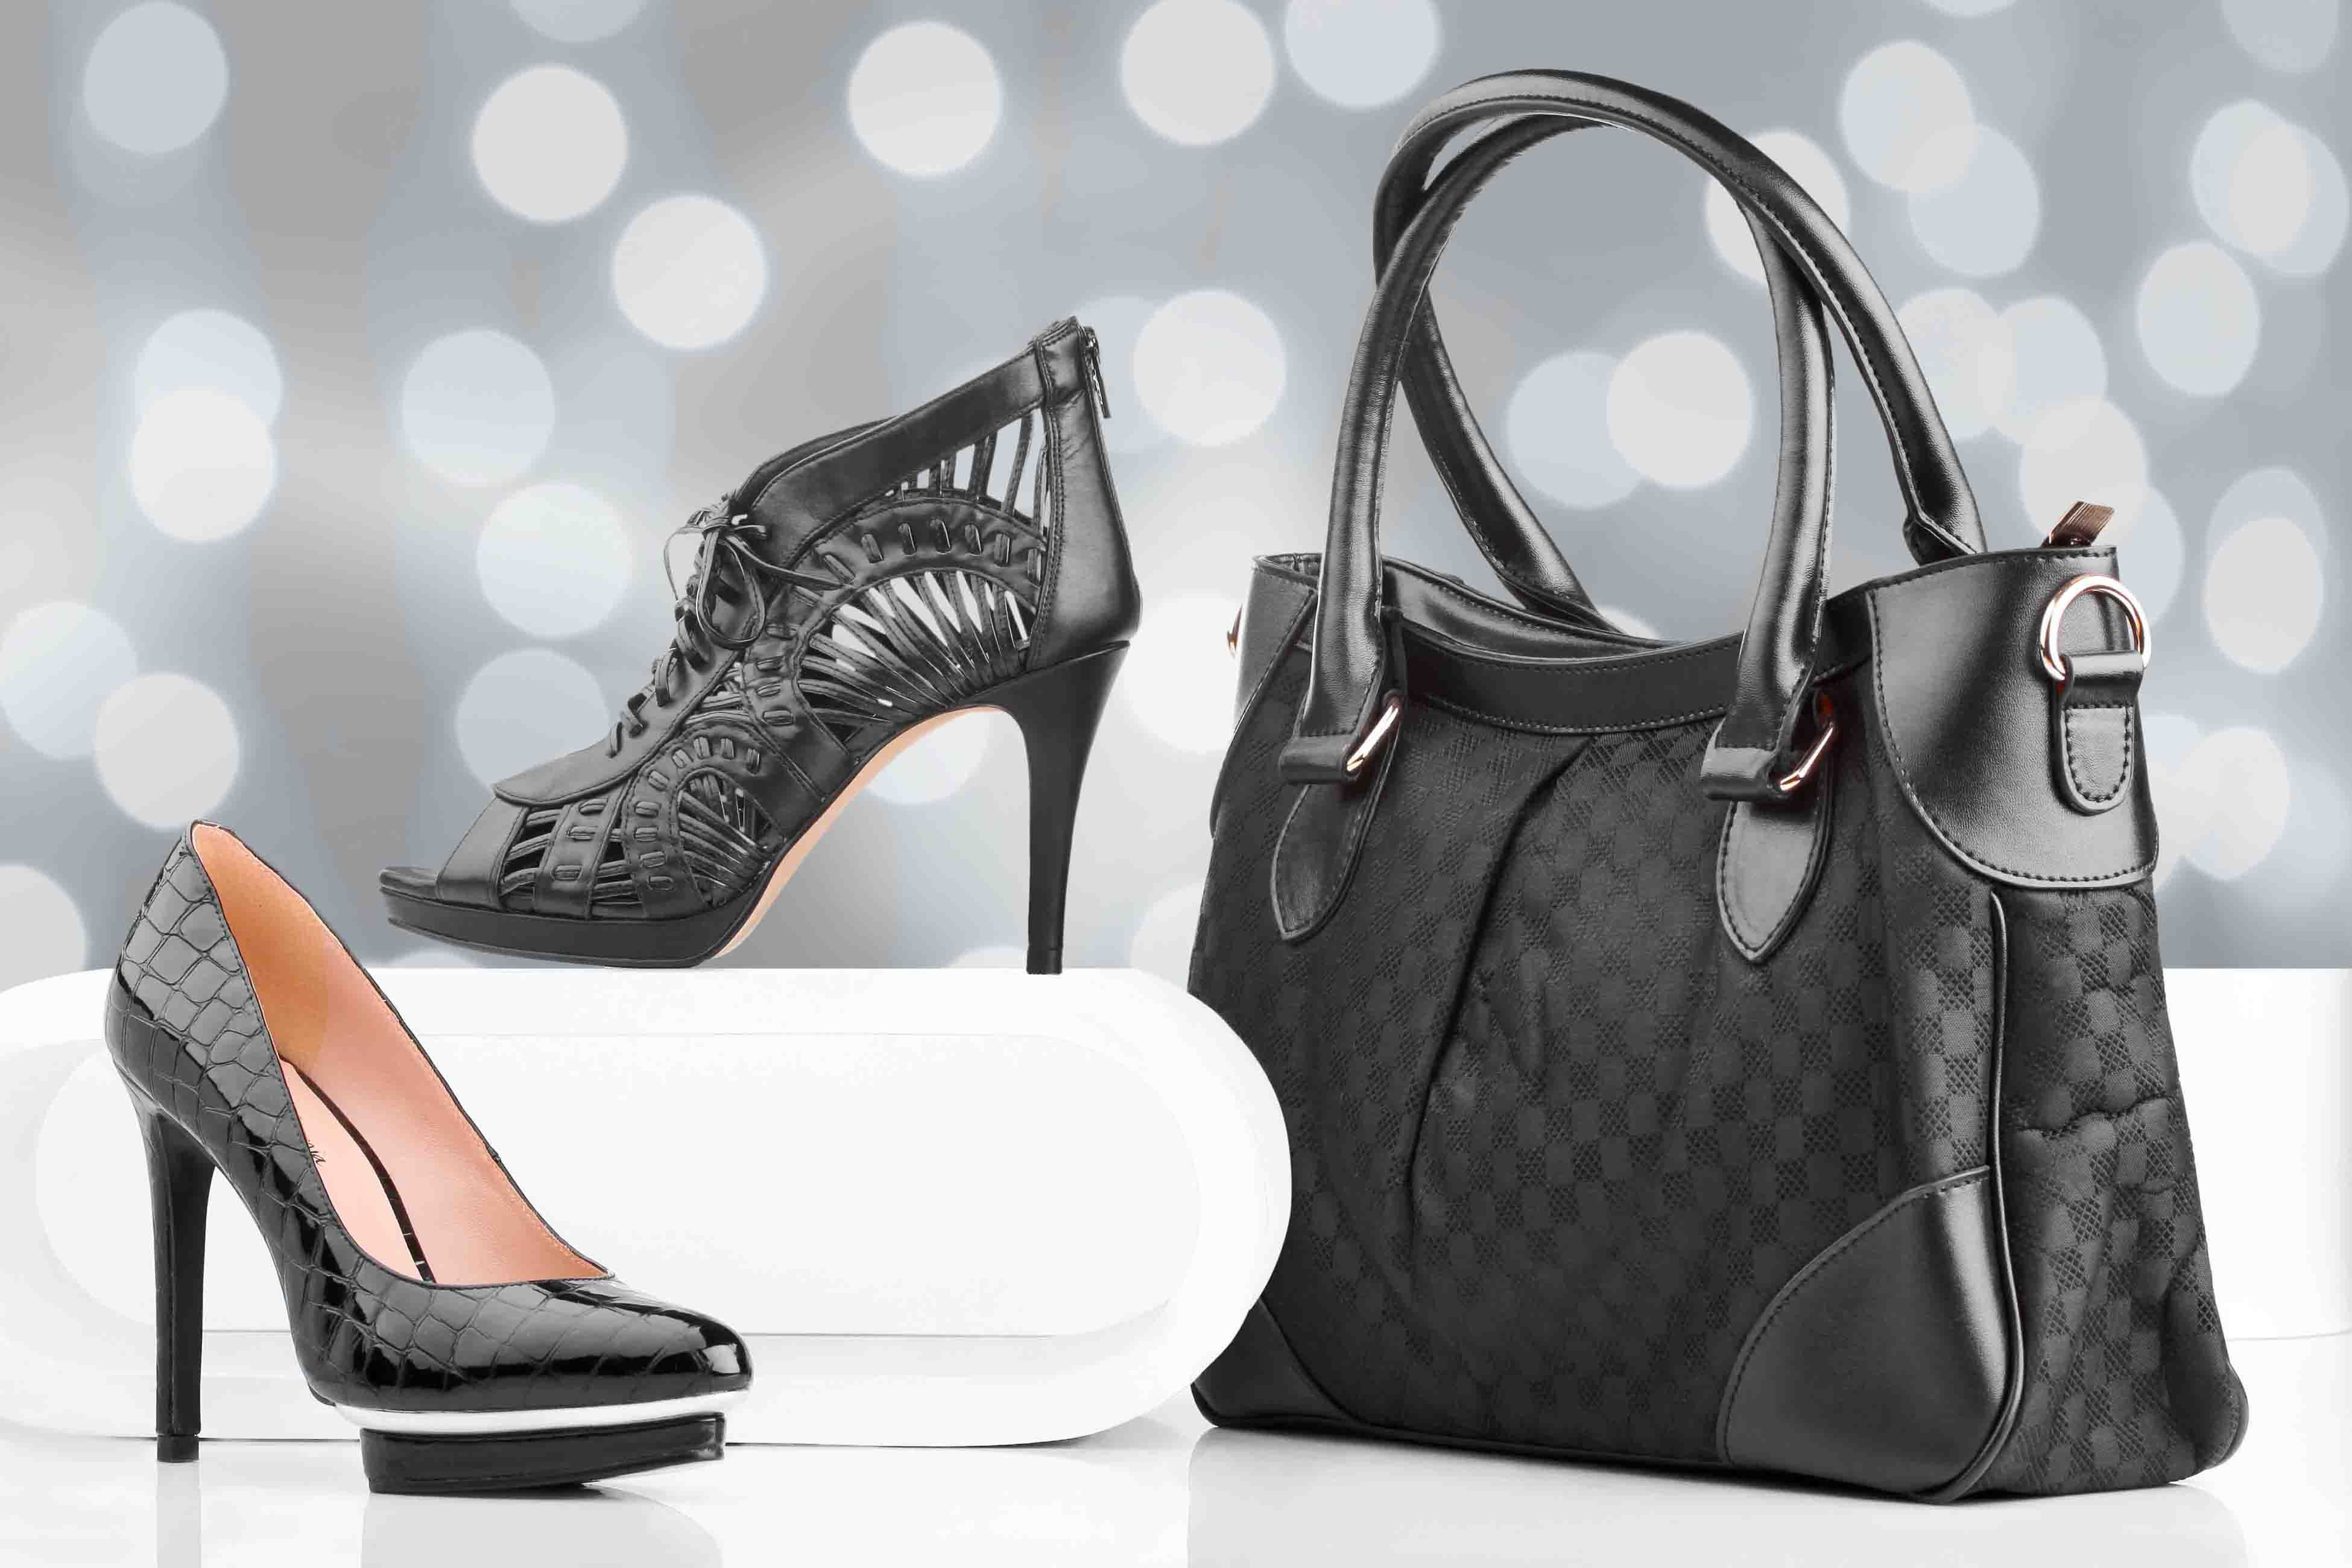 Insignia Party And Casual Brazilian Shoes & Bags Collection 2016-2017...styloplanet (1)